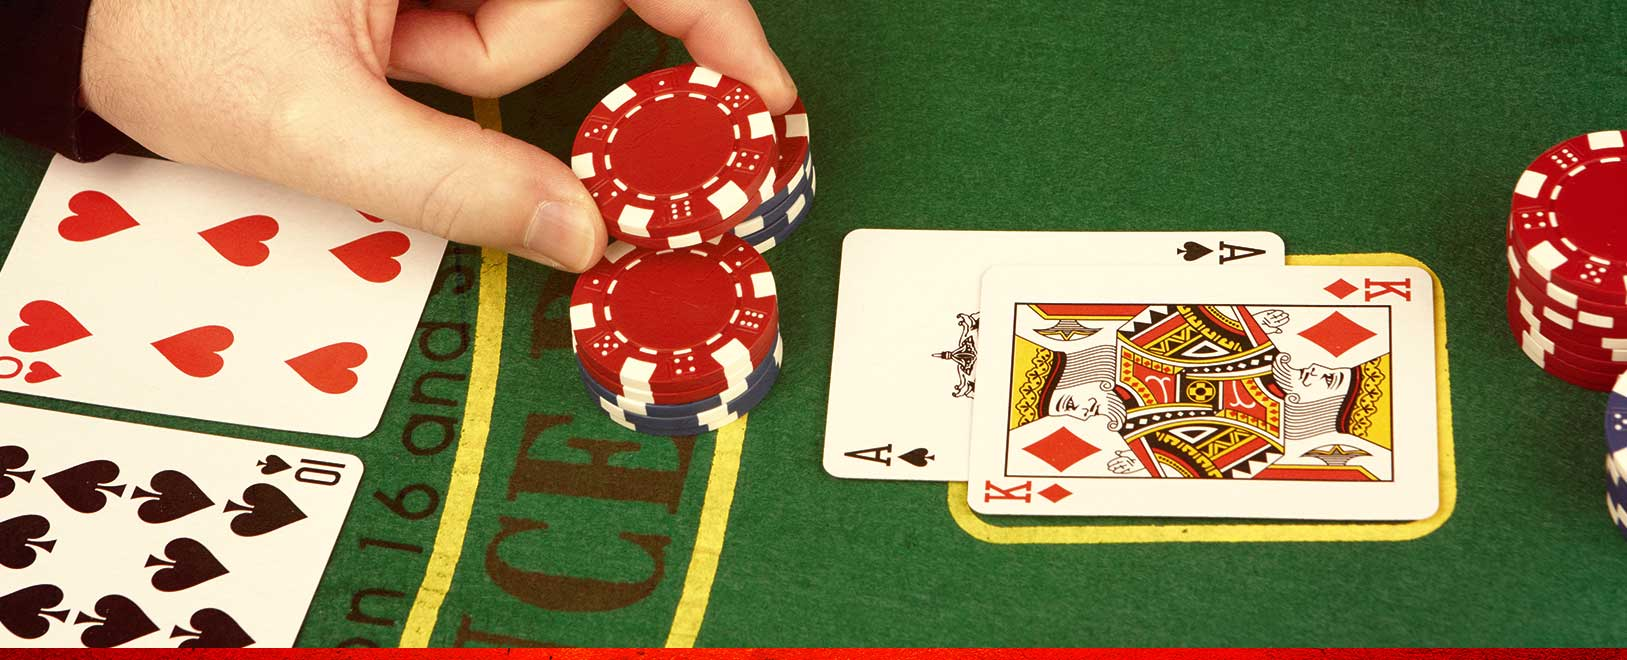 Blackjack Strategy: How to Double Down